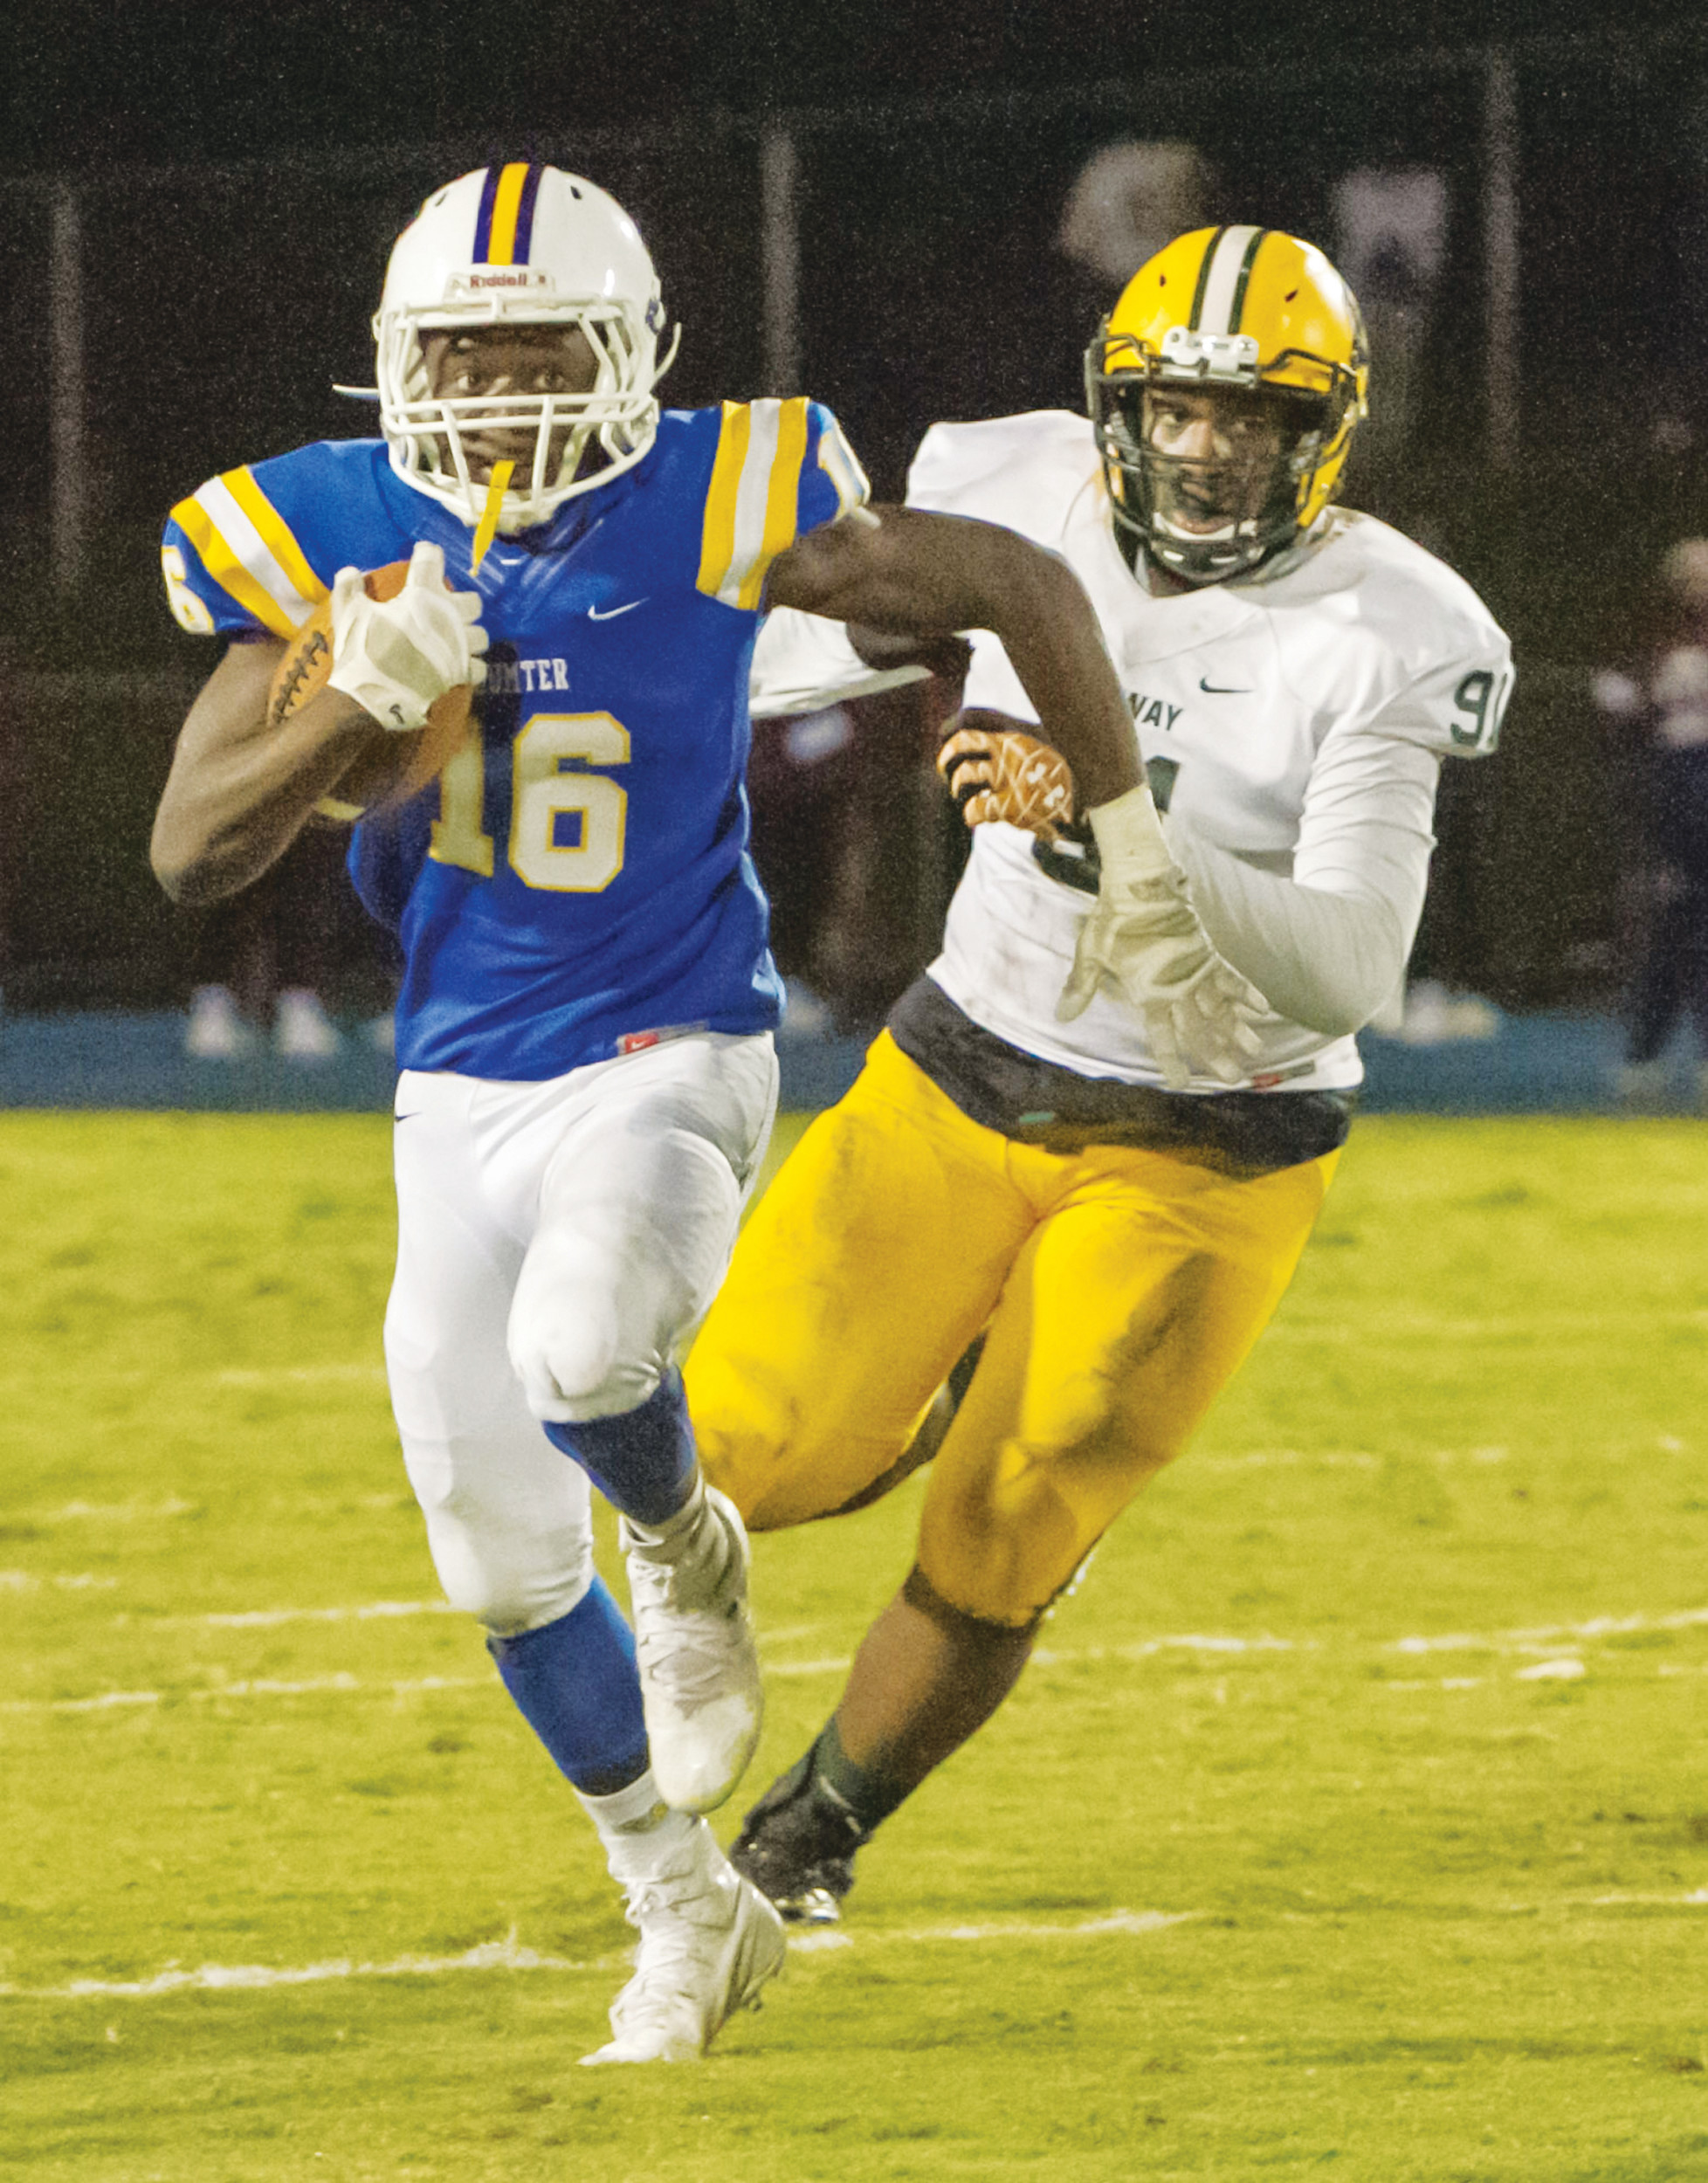 Sumter running back Jonathan Henry (16) and the rest of the Gamecocks travel to Summerville today to take on the Green Wave in the second round of the 5A state playoffs beginning at 7:30 p.m.